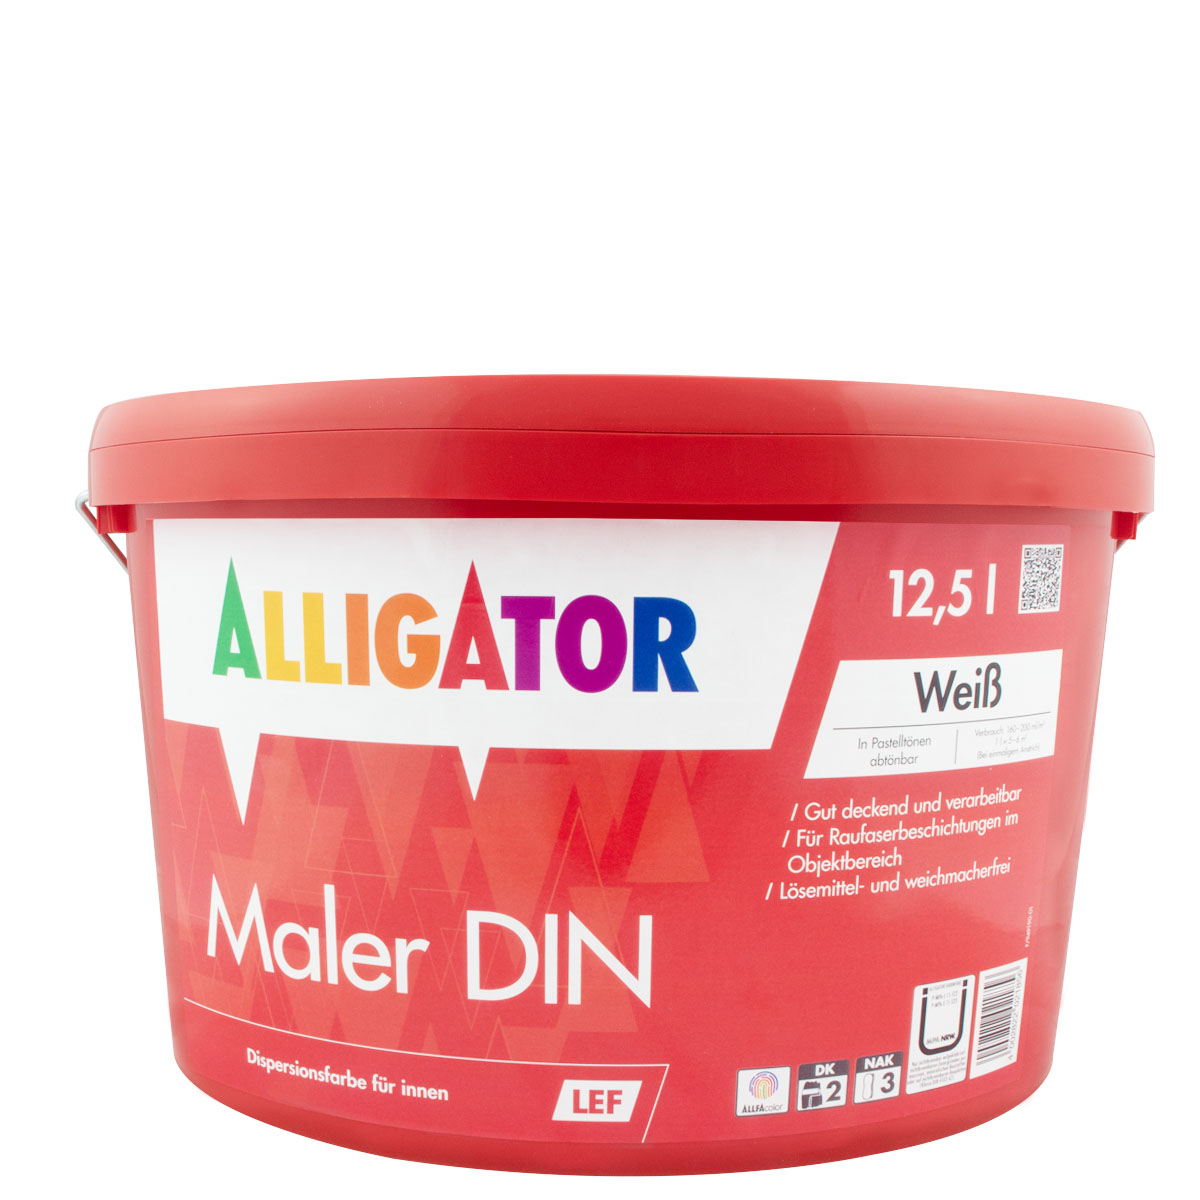 Alligator Maler DIN LEF 15L  weiss, Dispersions-Innenfarbe, ca.RAL9016